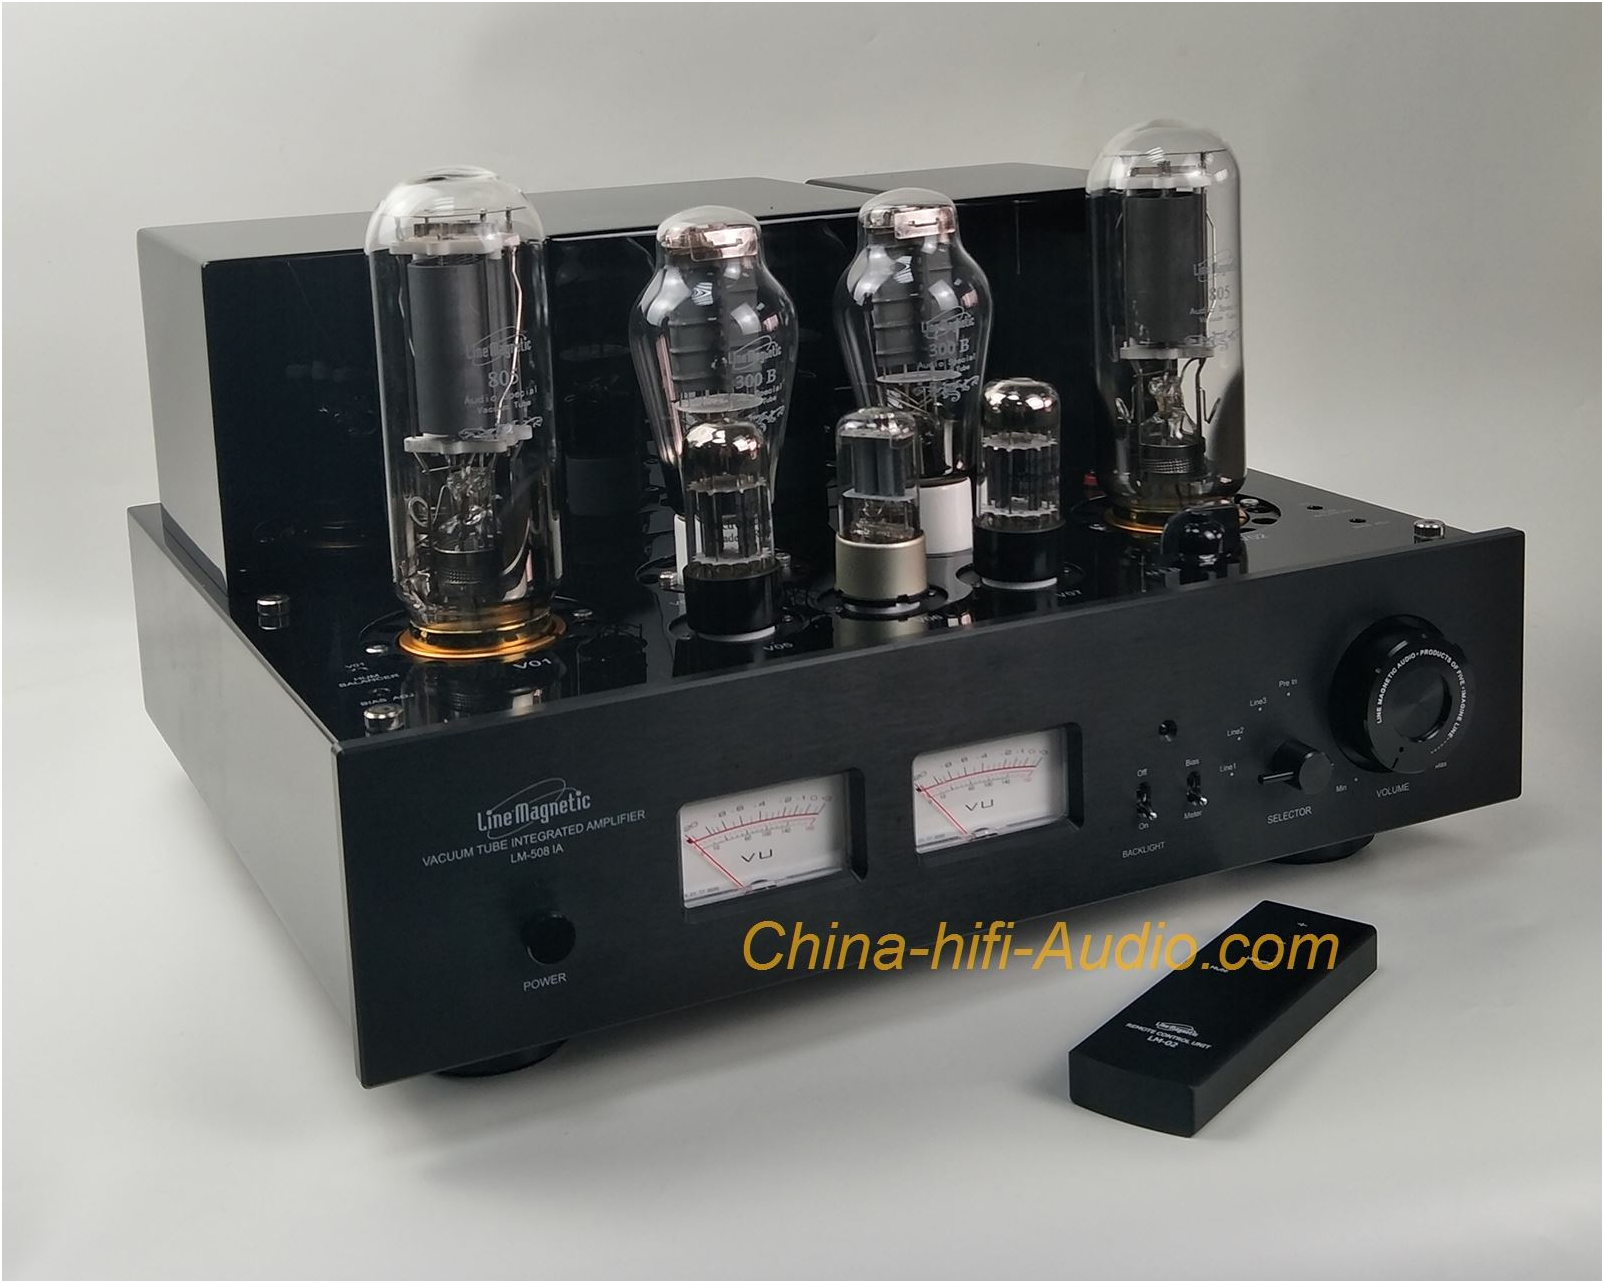 China-hifi-Audio Online Store Adds New Line Magnetic Audio Amplifiers In Its Stock For Worldwide Customers at Affordable Prices